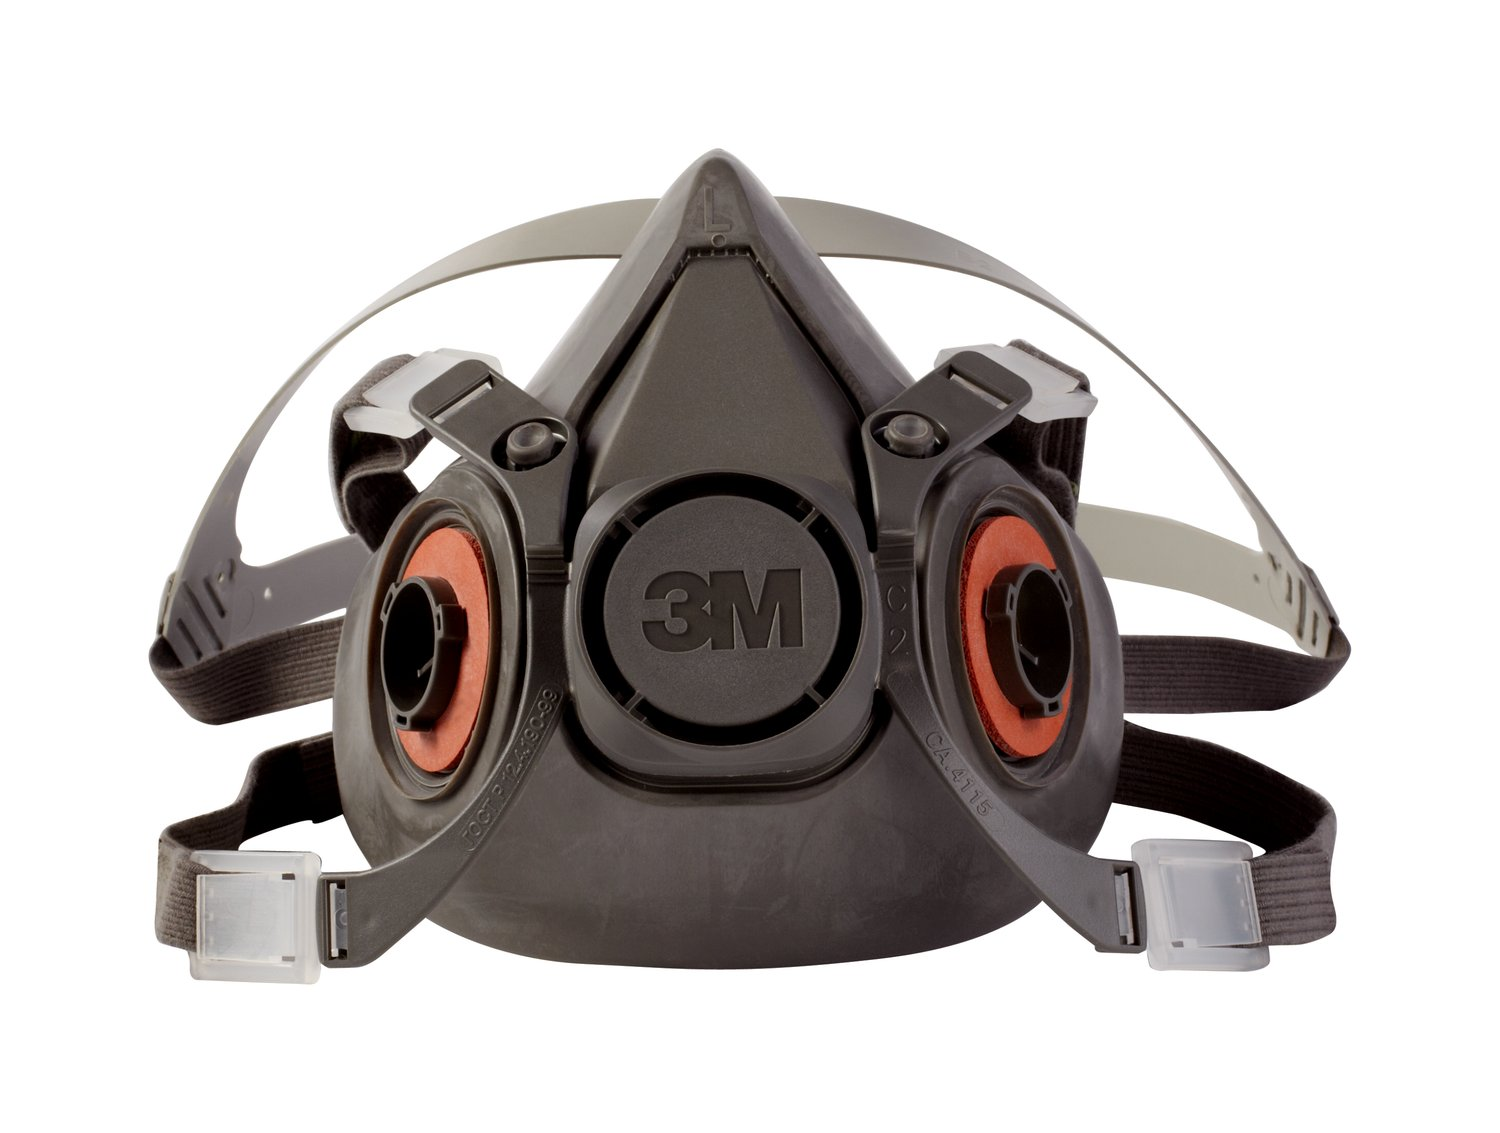 3m half facepiece reusable respirator 6000 large 3m 6300 marathon hardware. Black Bedroom Furniture Sets. Home Design Ideas